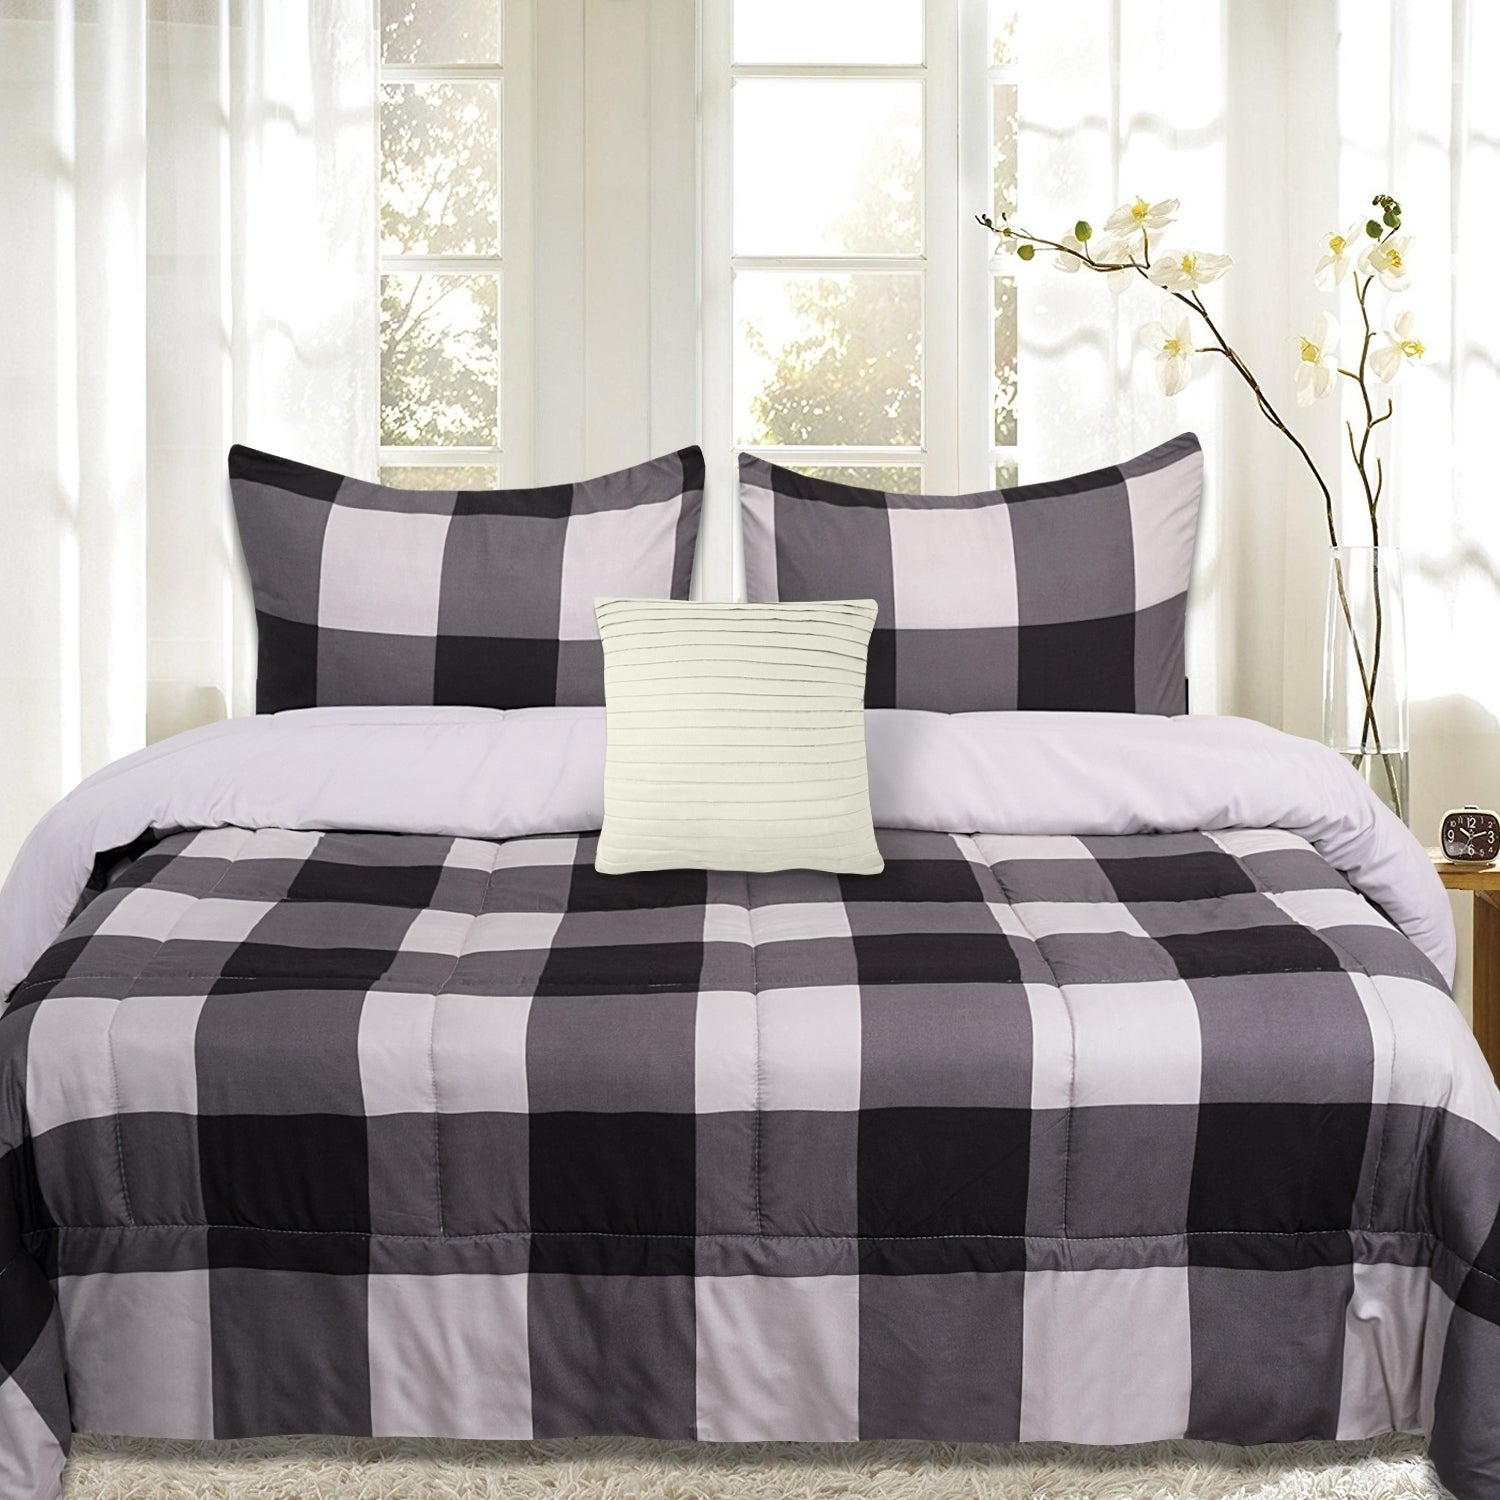 Sweet Home Collection 4 Piece Buffalo Check Comforter Set Black And Grey On Sale Overstock 25493441 Full Full Queen